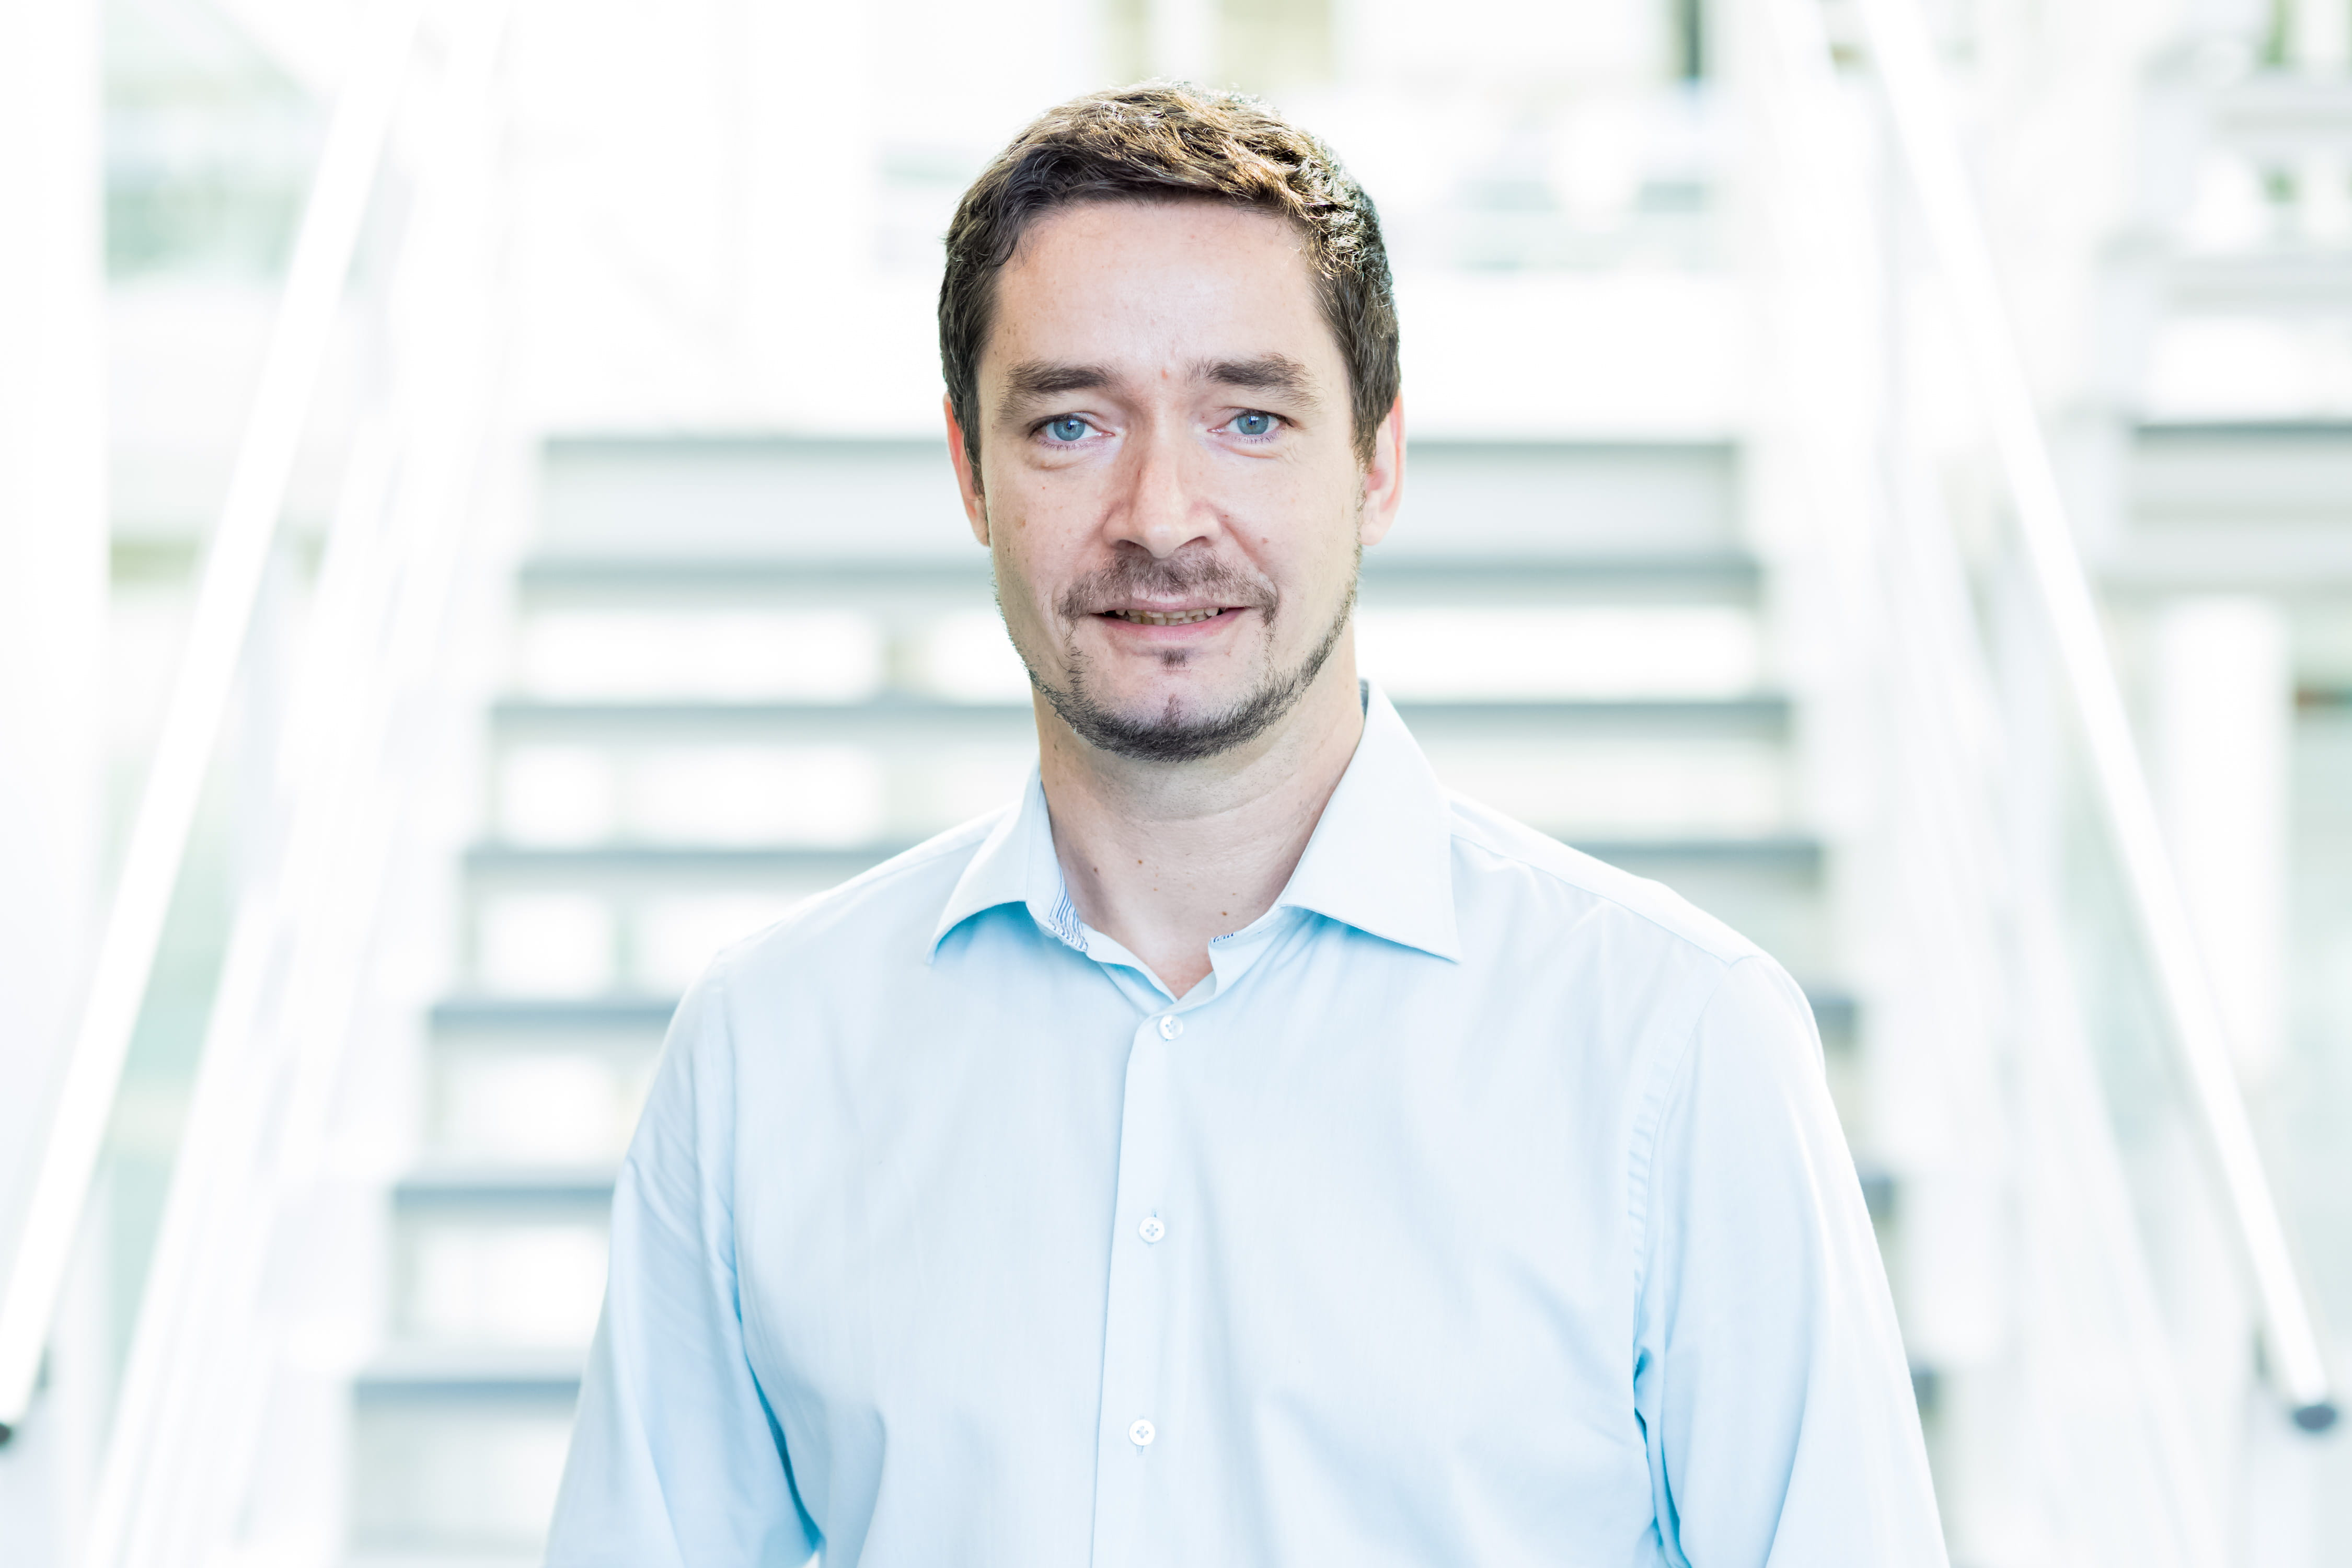 Marco Grüttgen, Head of Interconnect Management & Analysis Services